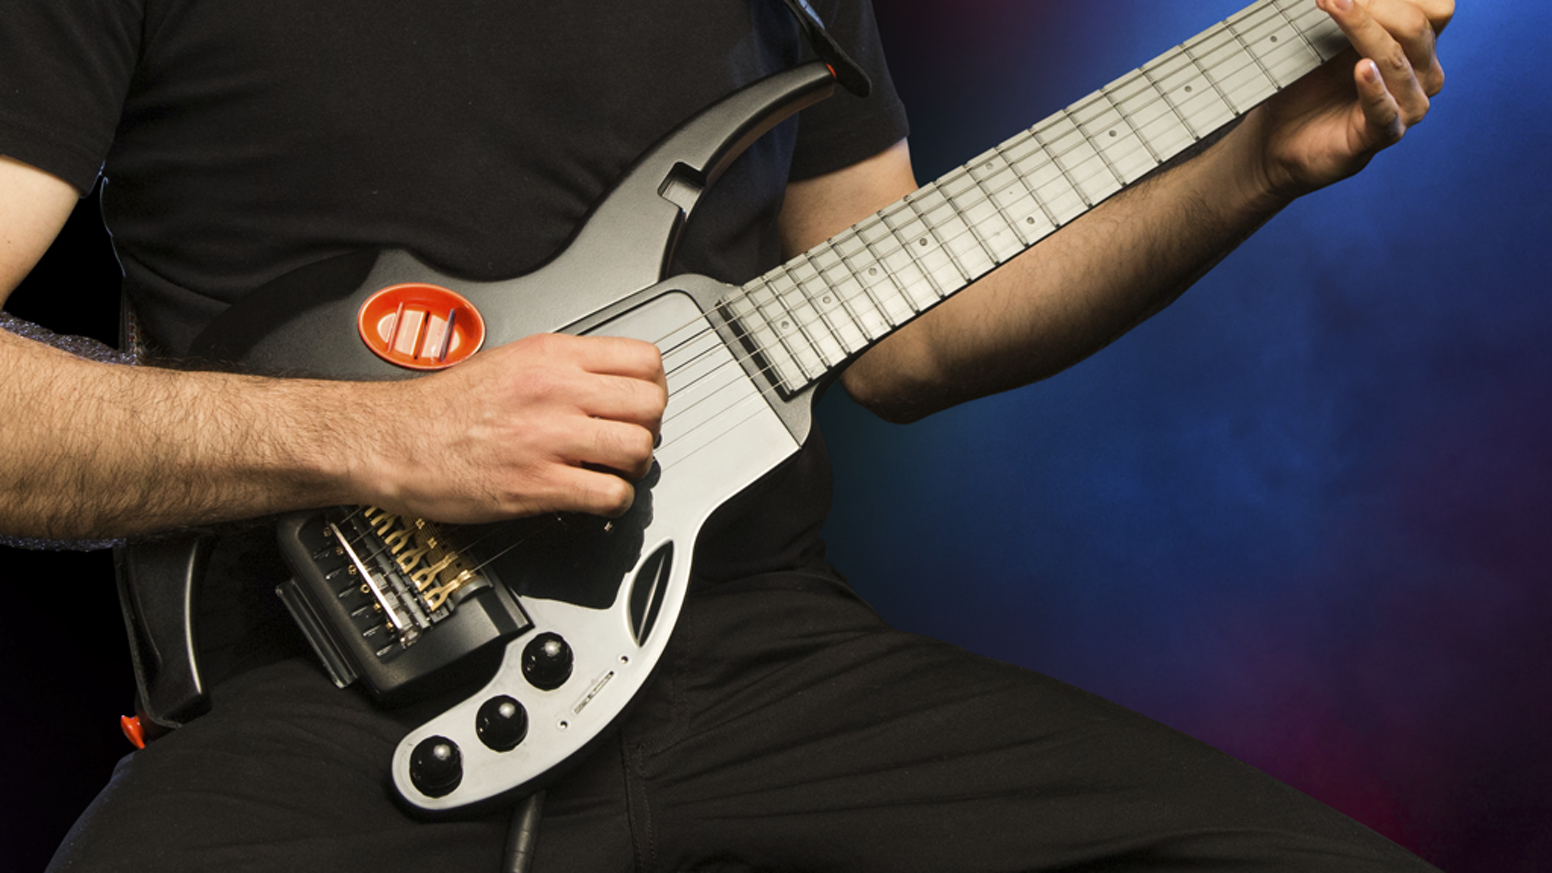 Unleash your creativity with this high-quality modular guitar. Change pick-ups or body within 10 seconds, without even looking!